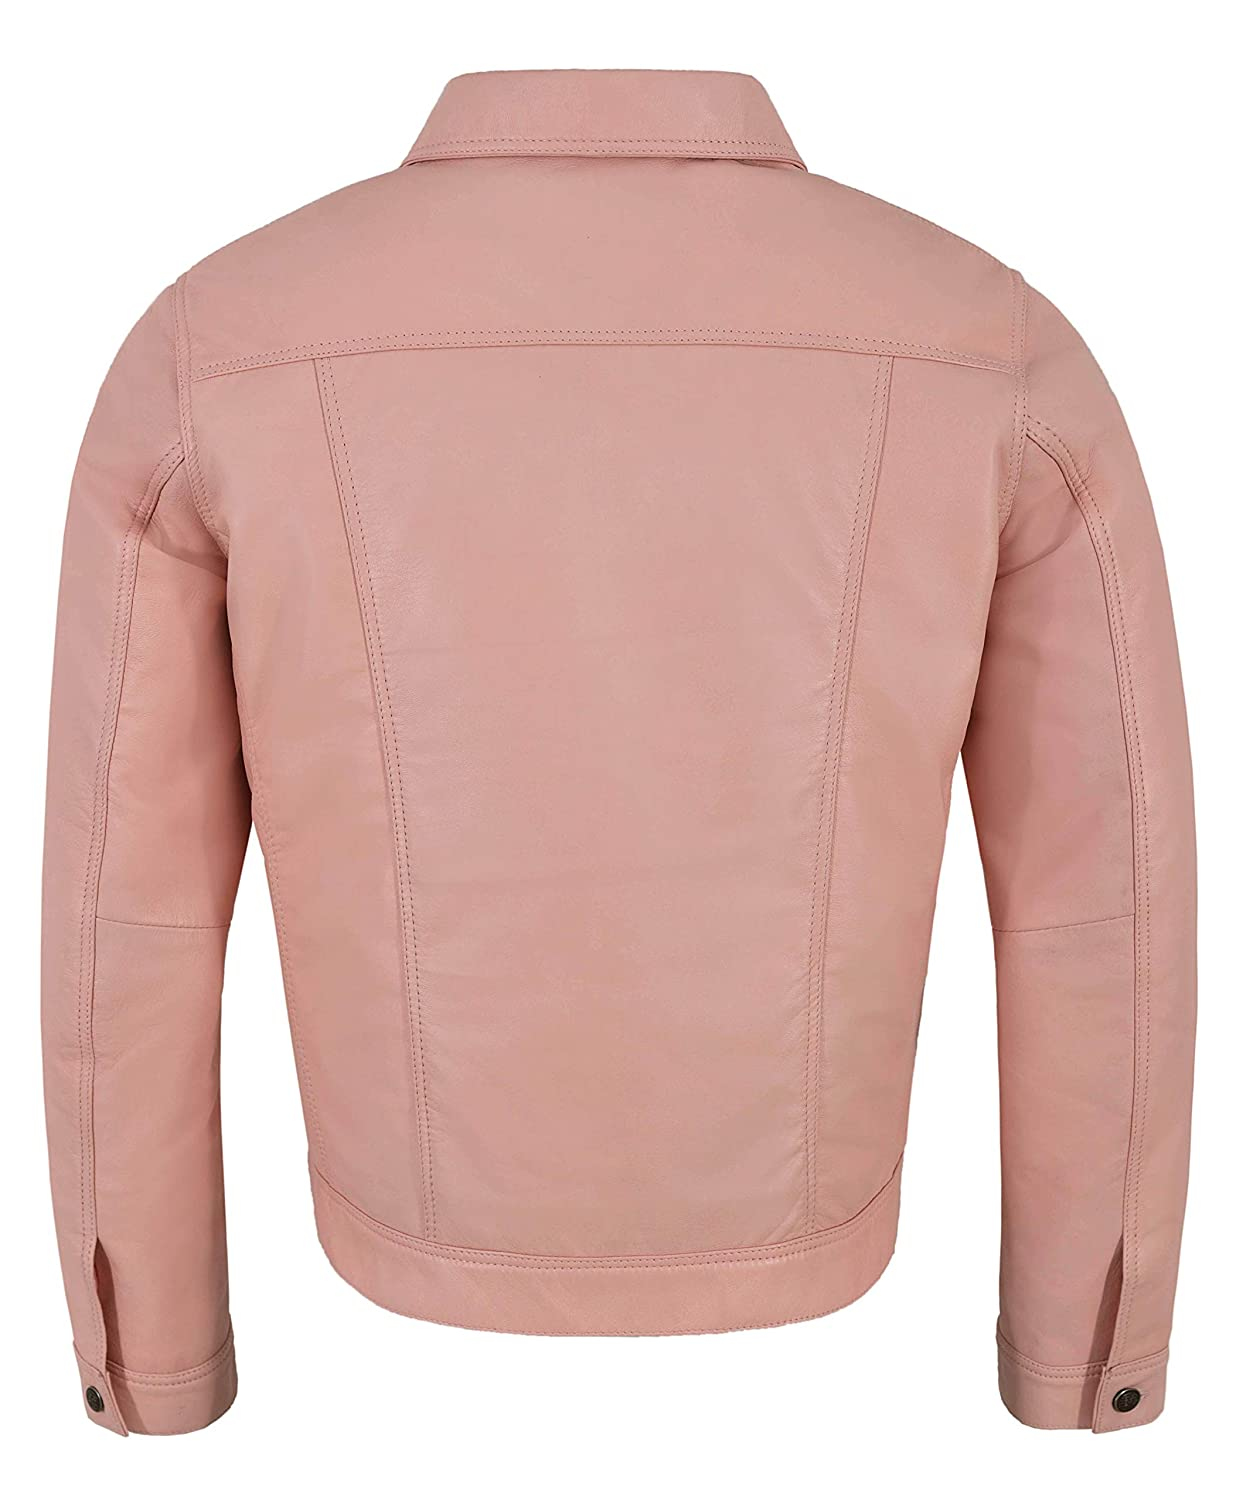 db9ce4b29148 Men s Real Leather Jacket Baby Pink Napa Classic Western Trucker ...